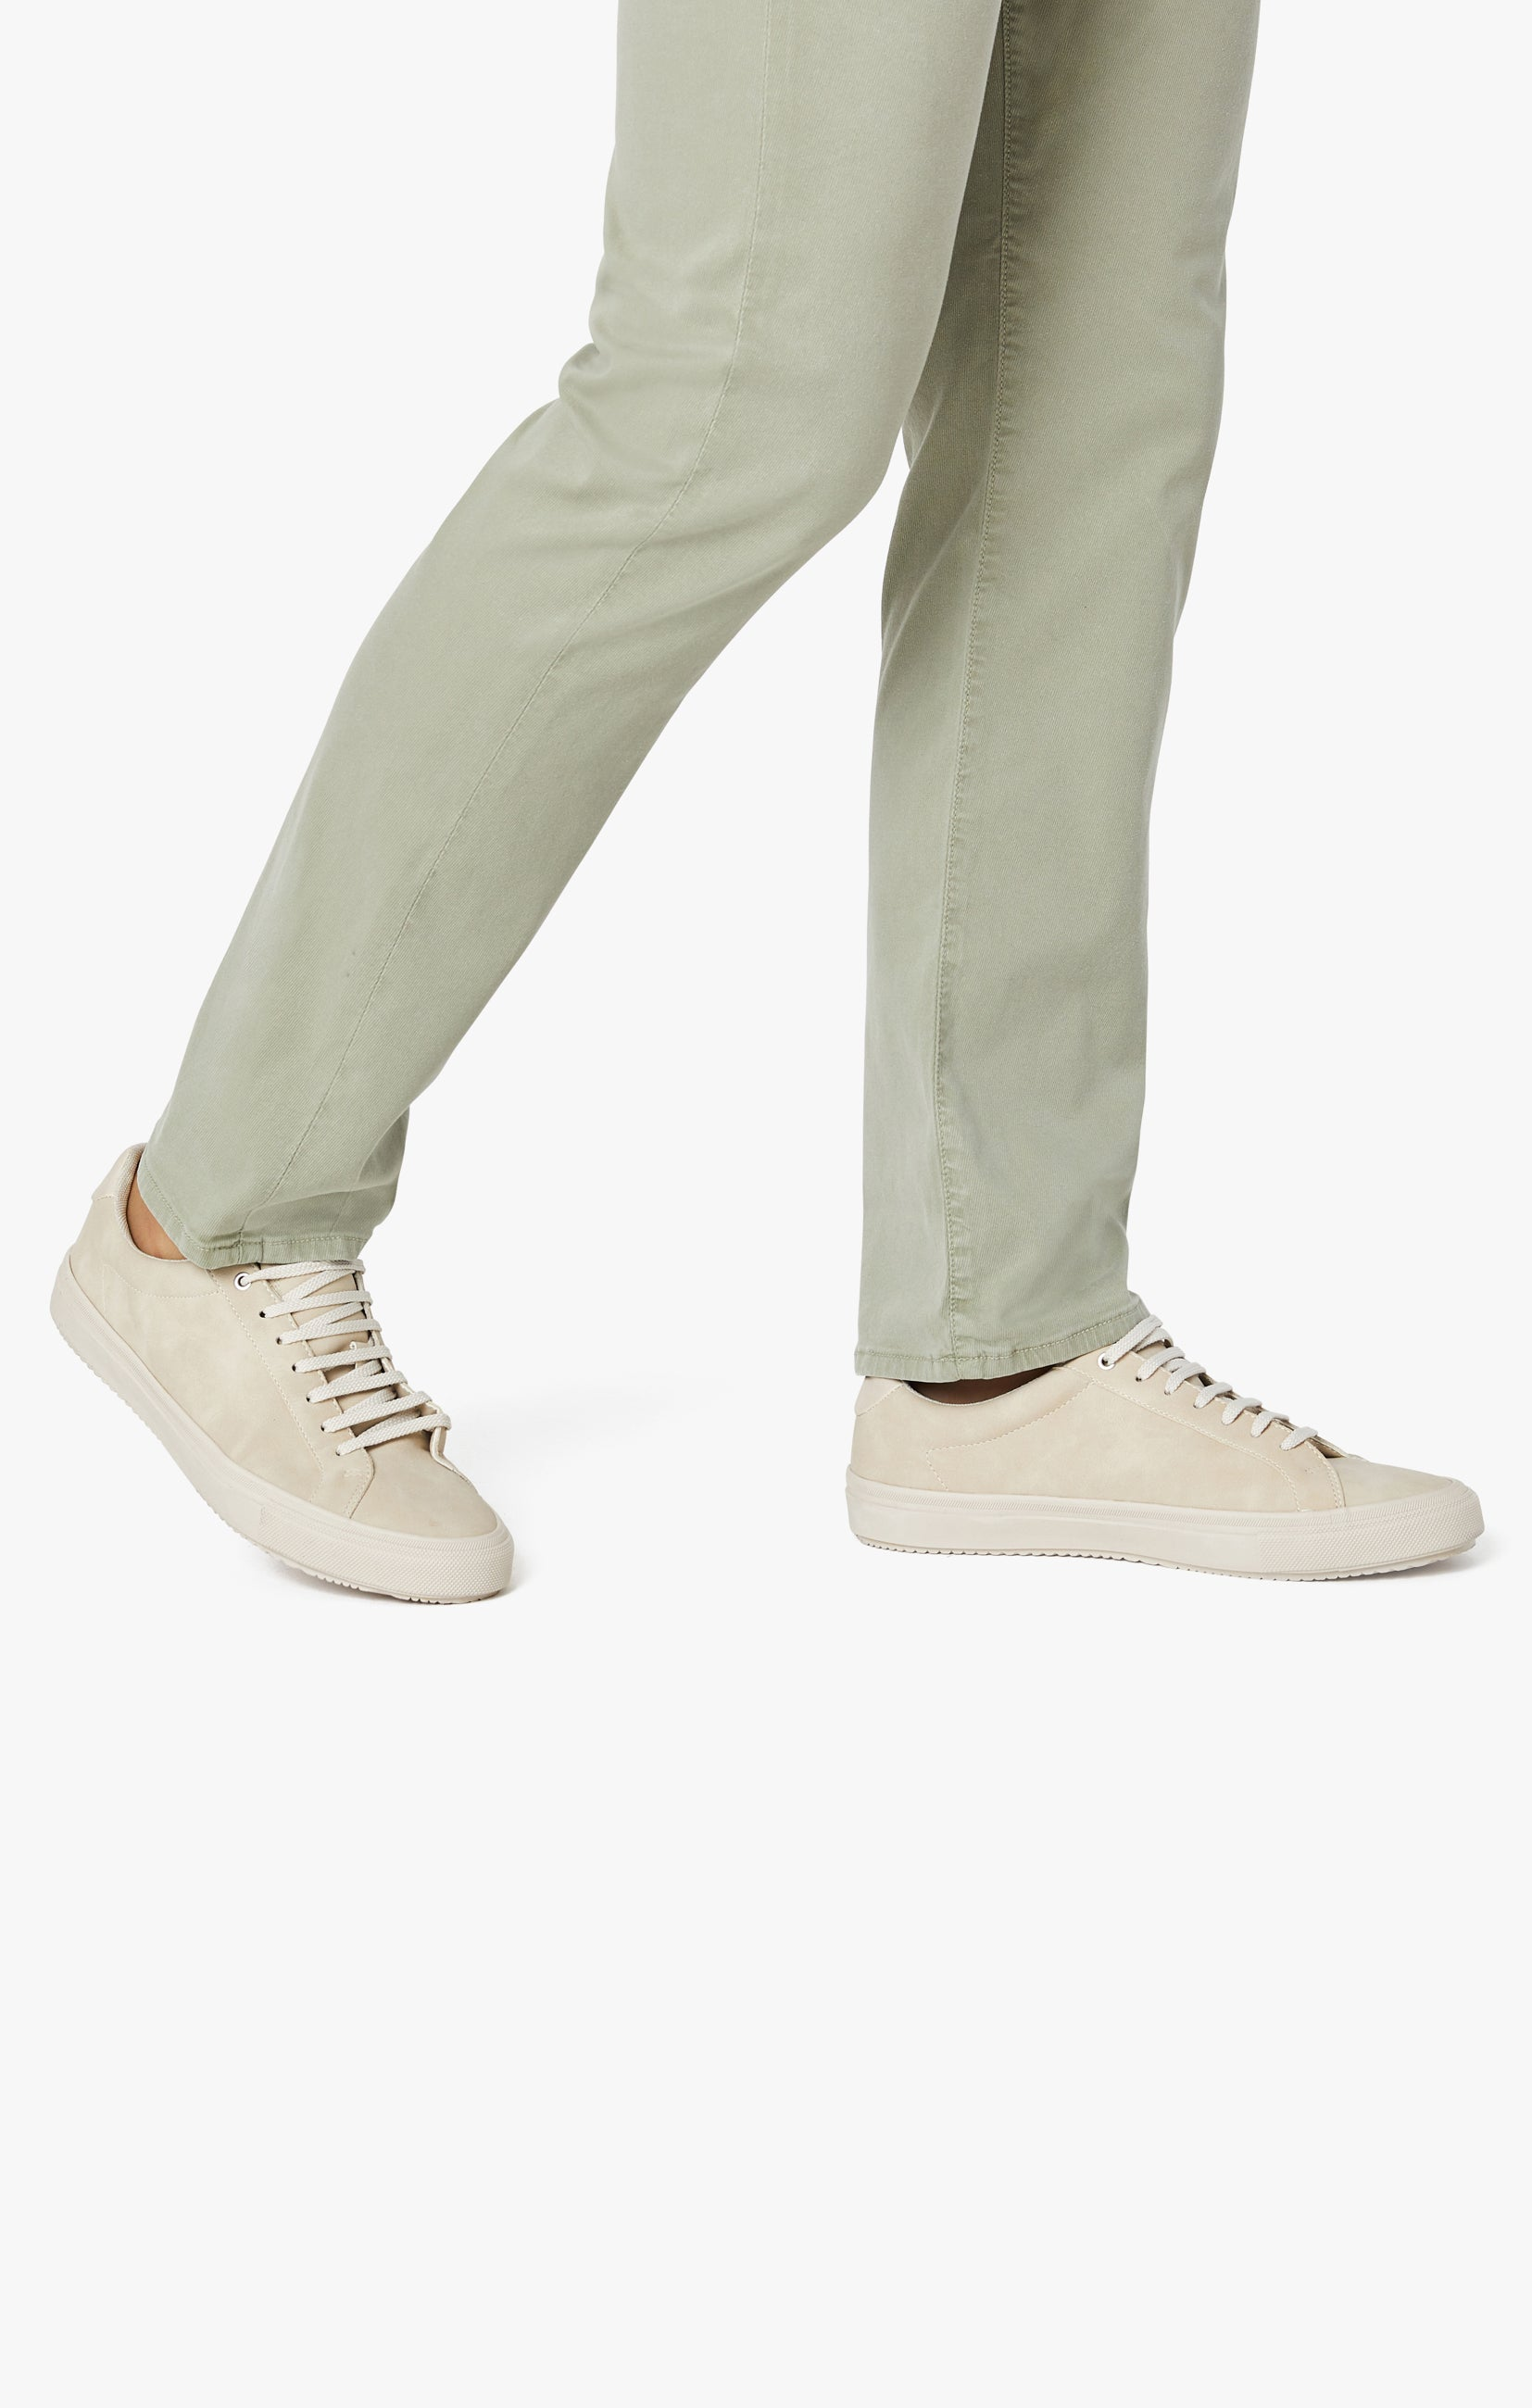 Courage Straight Leg Pants in Sage Soft Touch Image 9